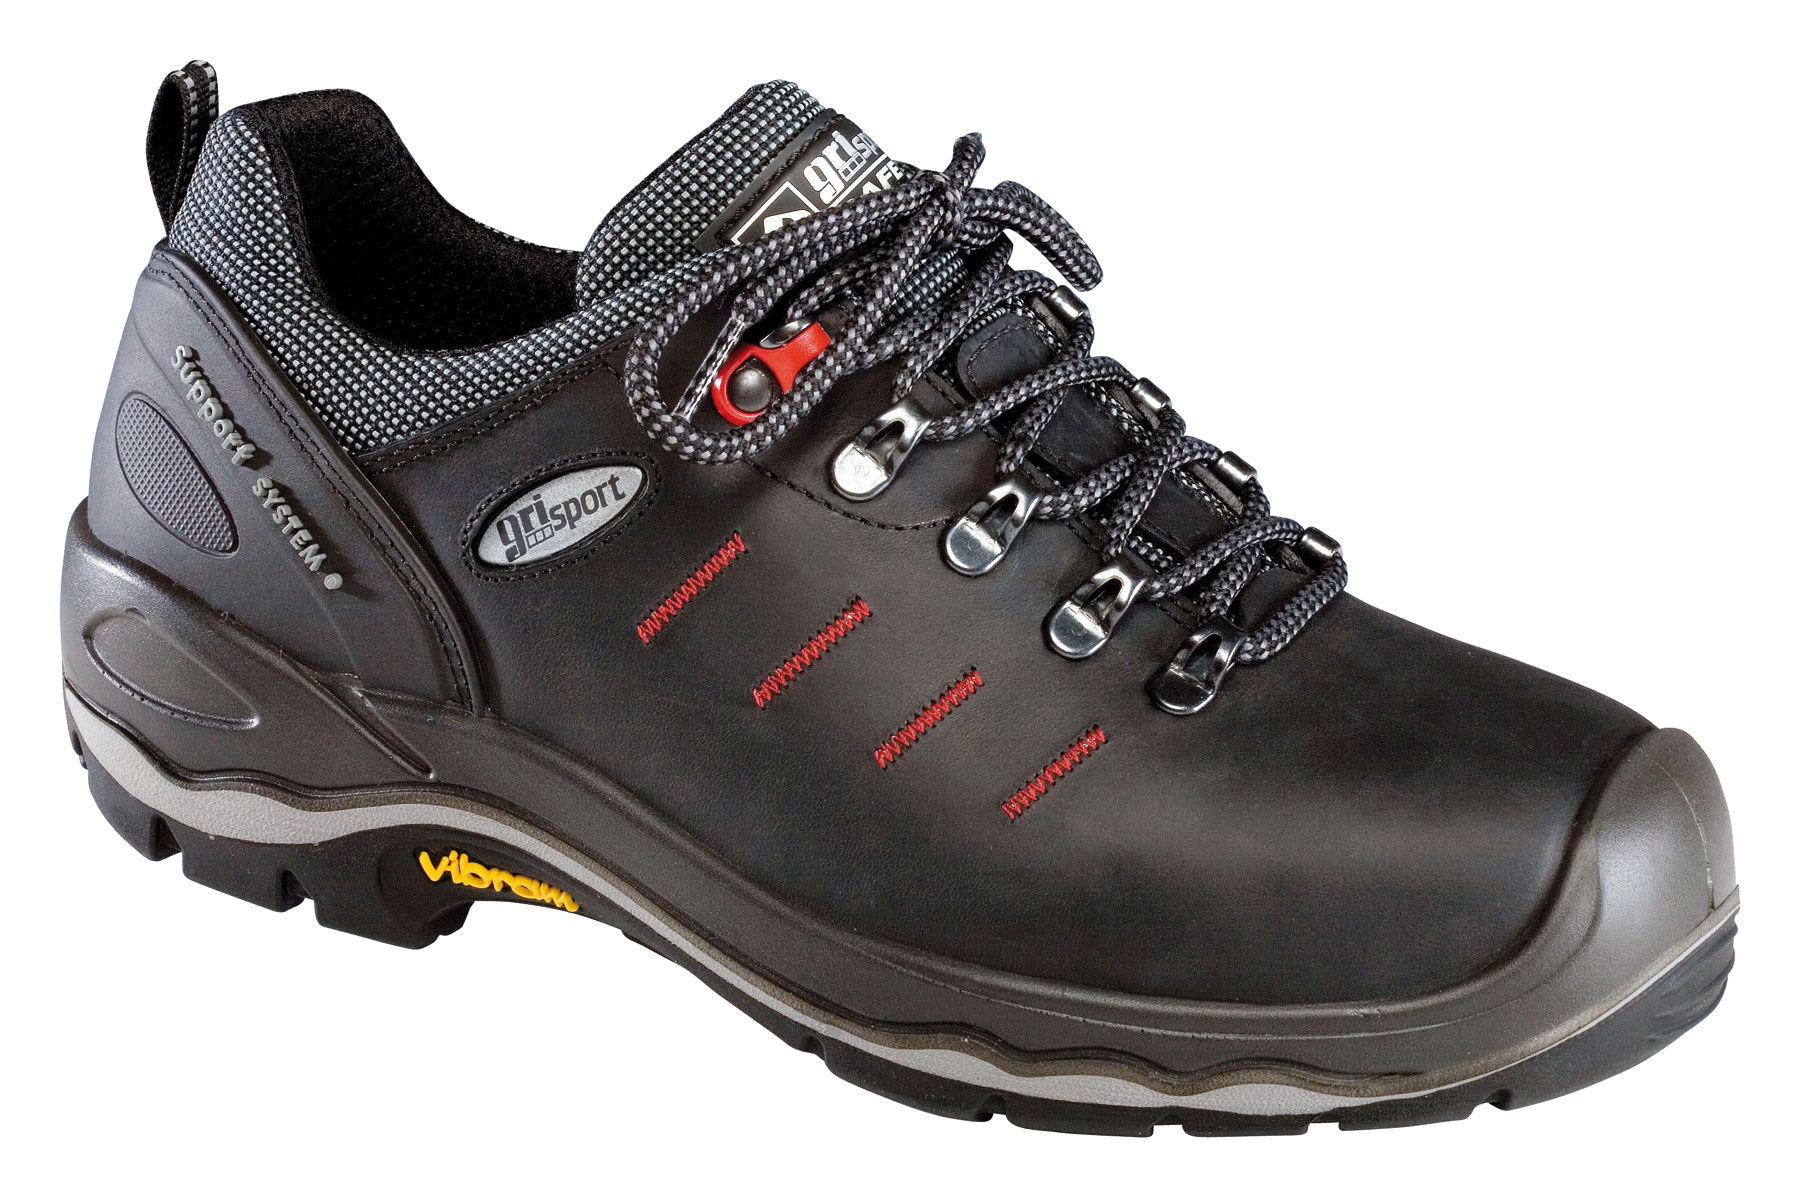 Grisport 72071 var 16a - Black/Red - 36